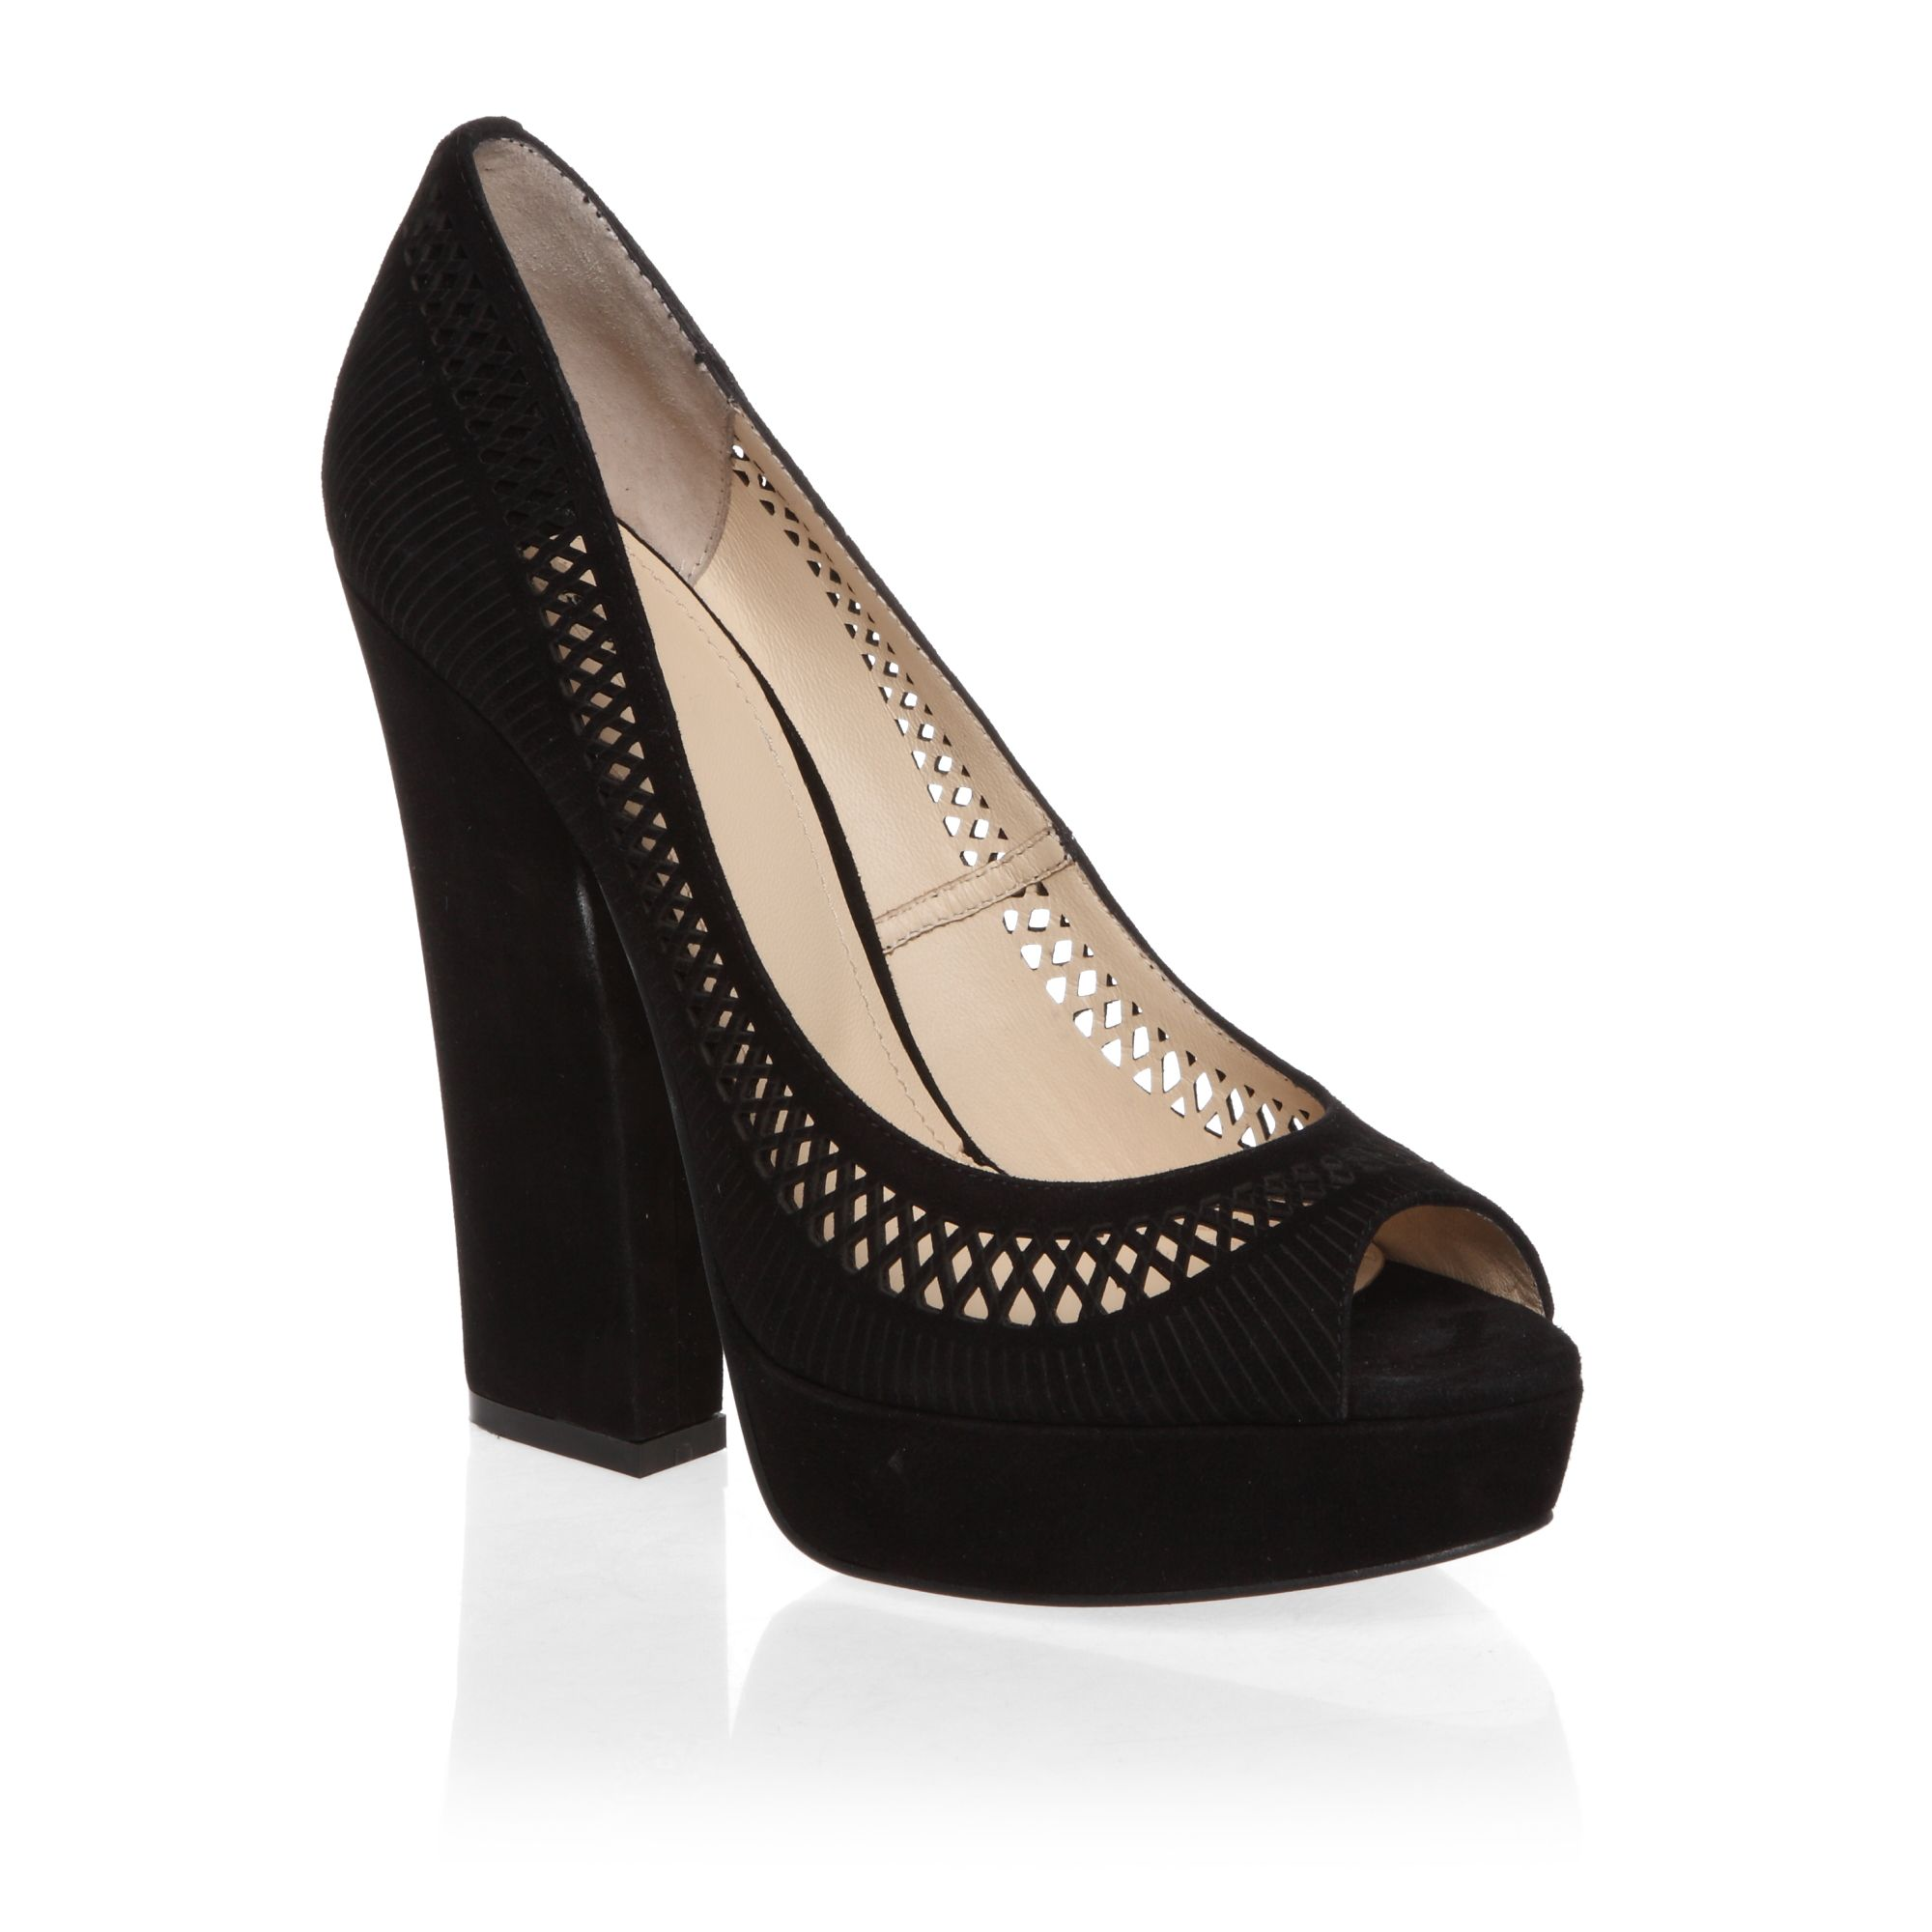 Peep toe block heeled court shoes